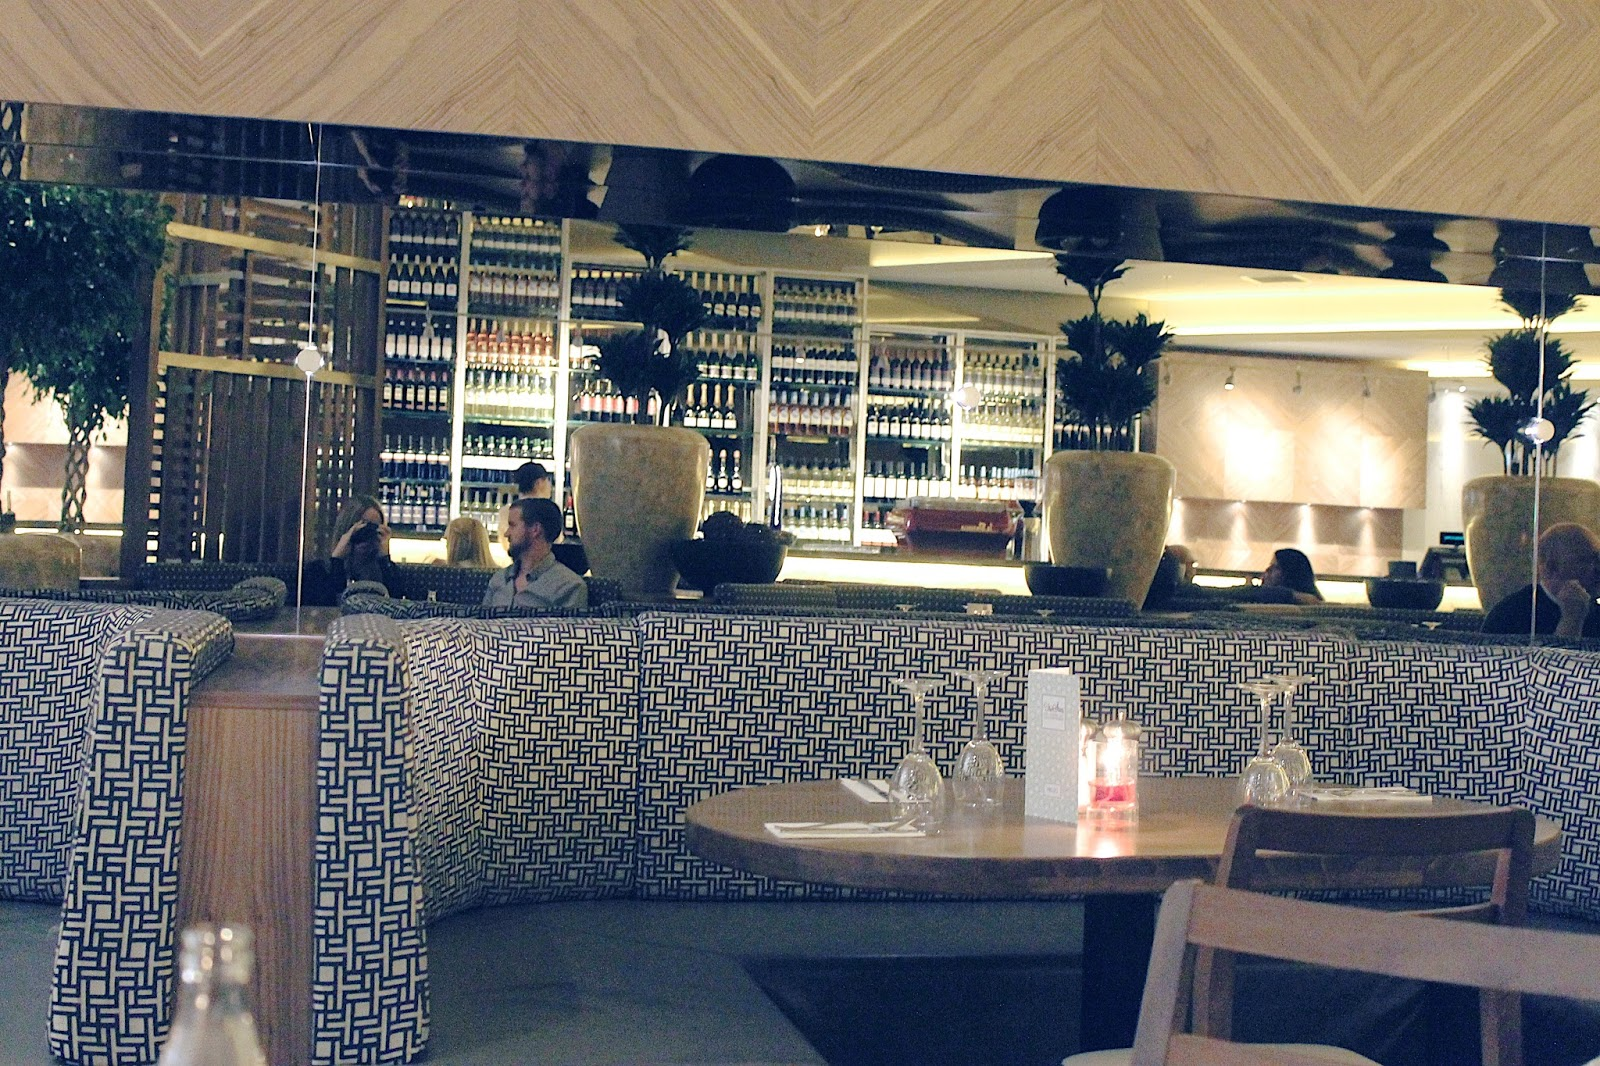 prezzo bletchley review